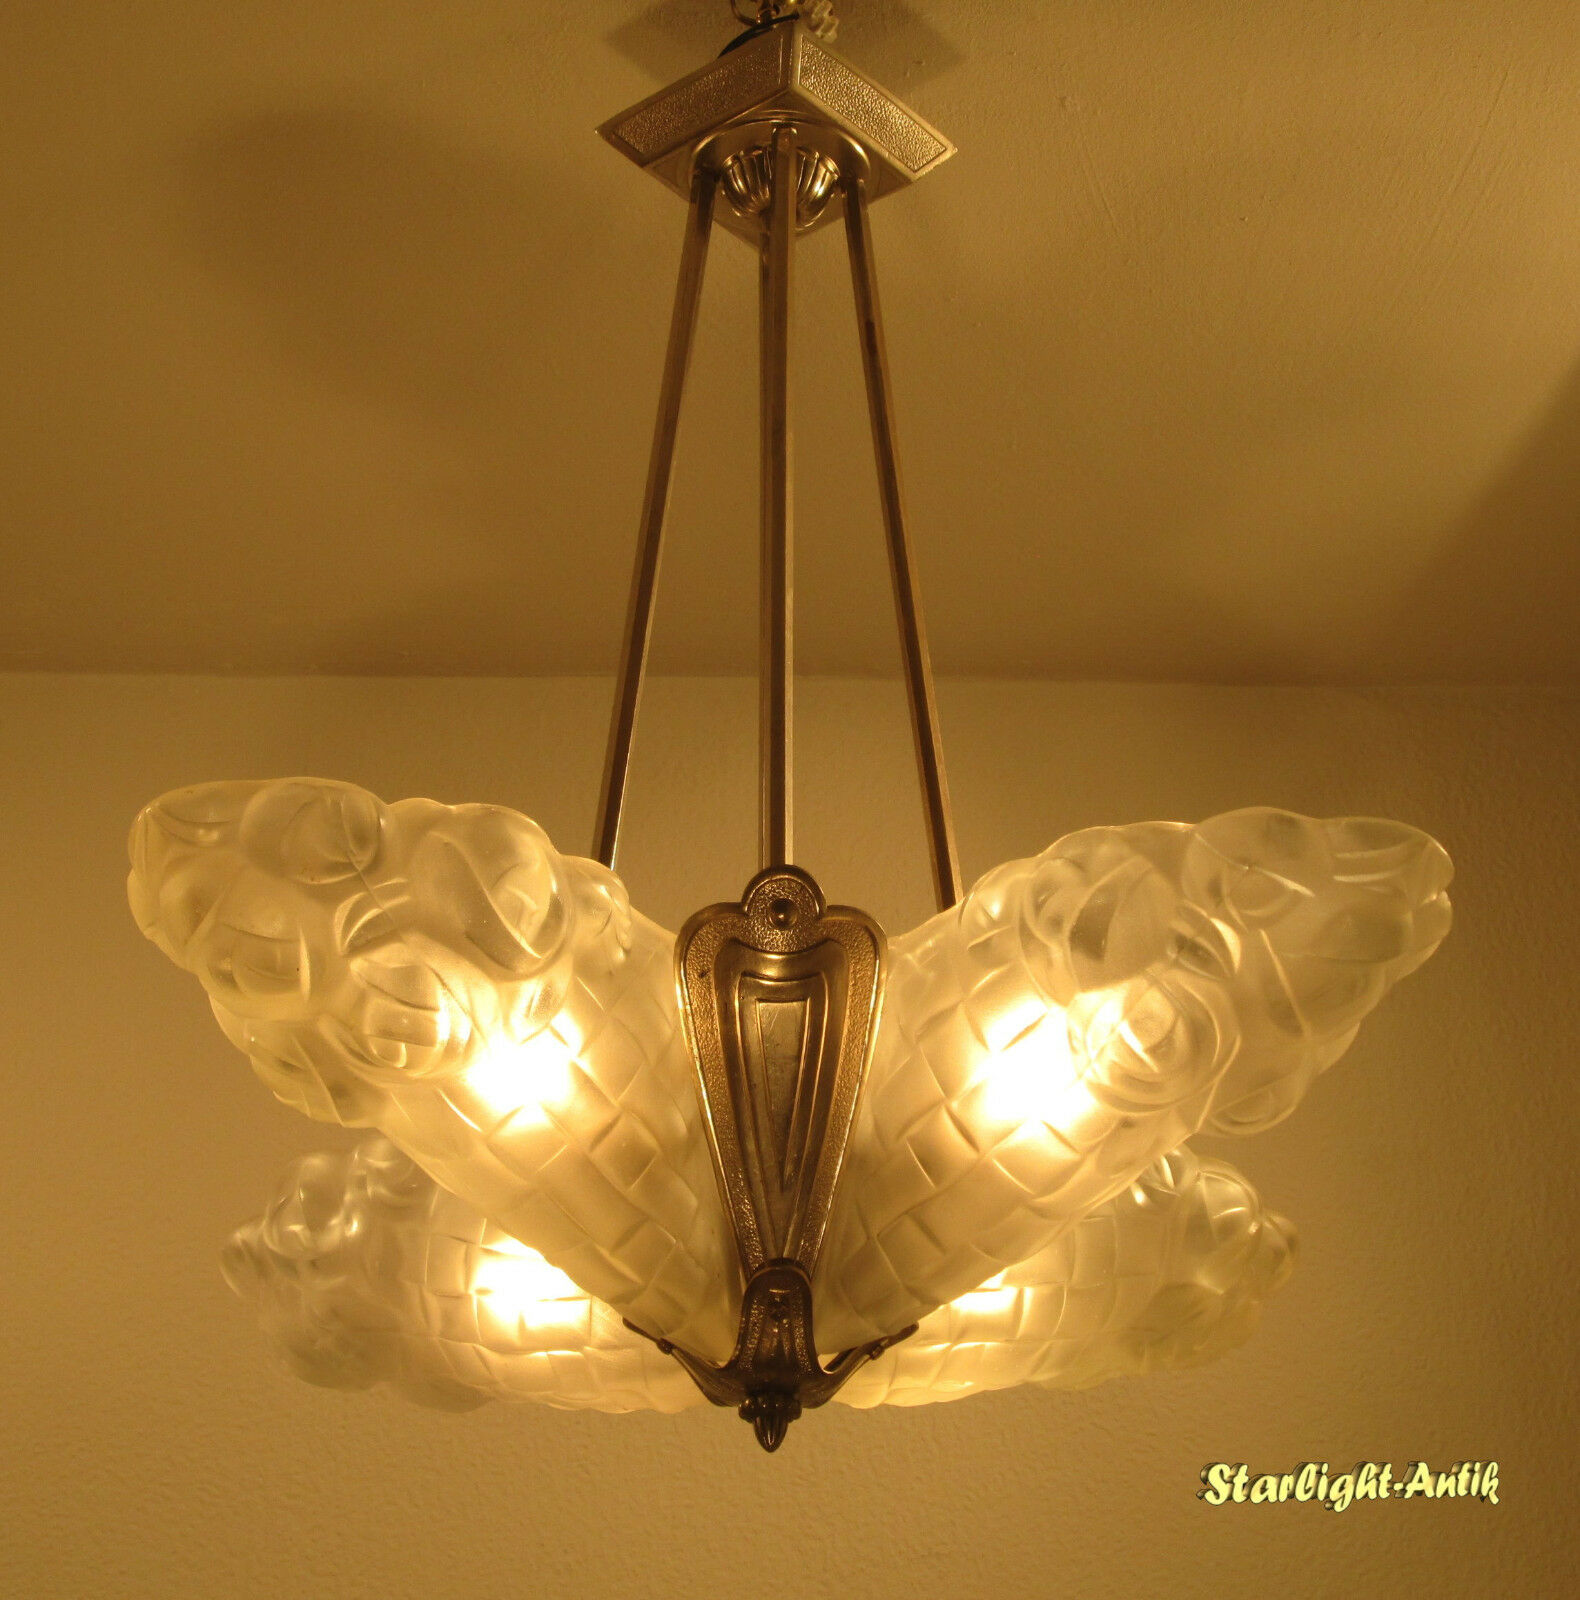 Stunning French Art Deco Chandelier 1925 - Signed: Degué